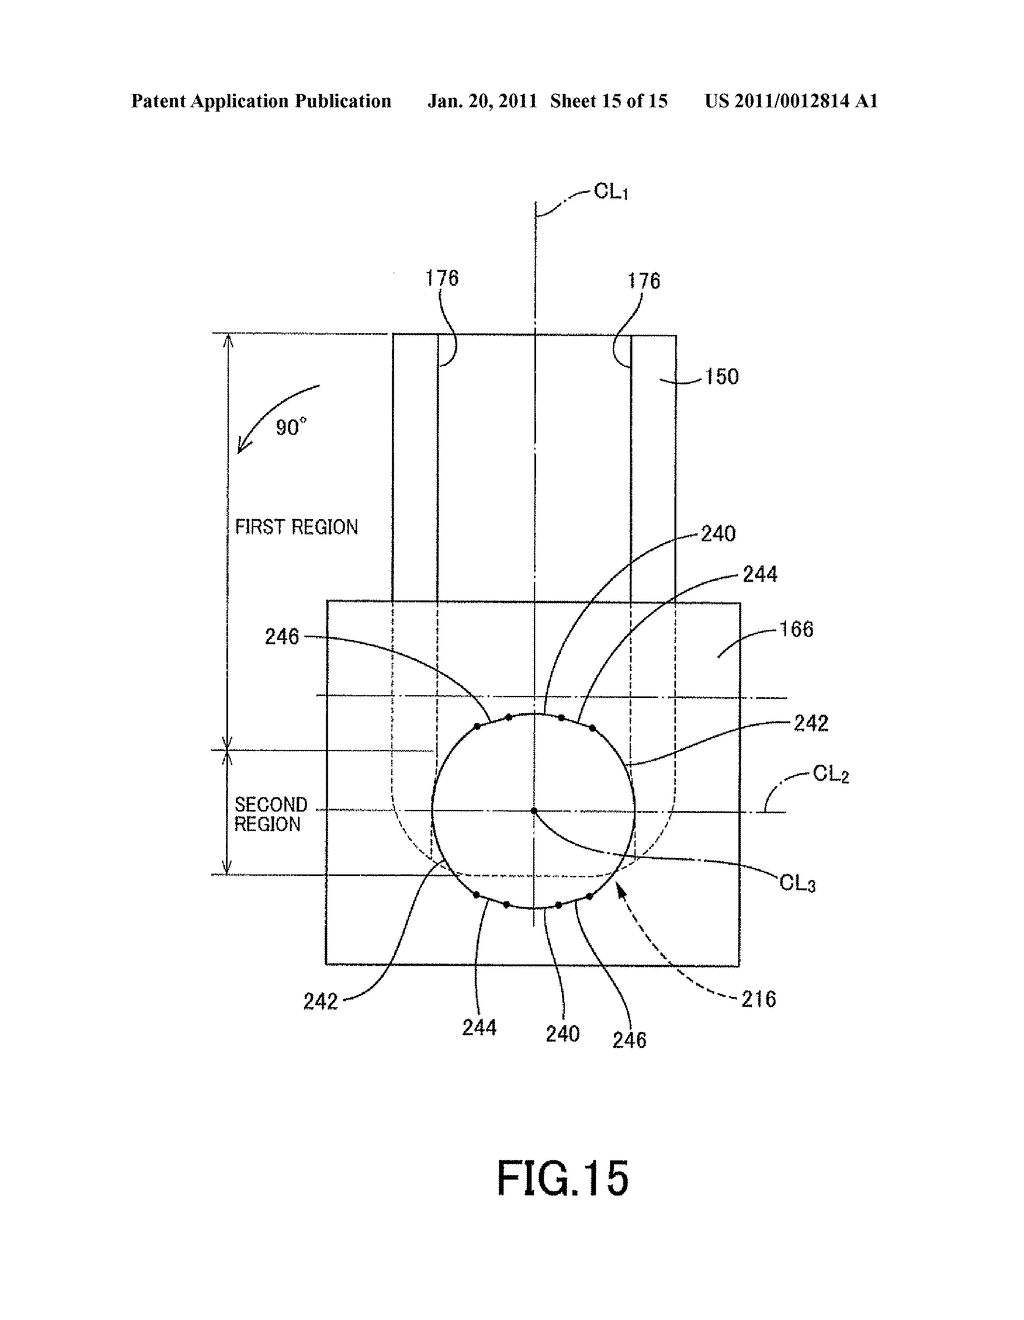 Adjustable Attachment for Attaching Head-Mounted Display to Eyeglasses-Type Frame - diagram, schematic, and image 16